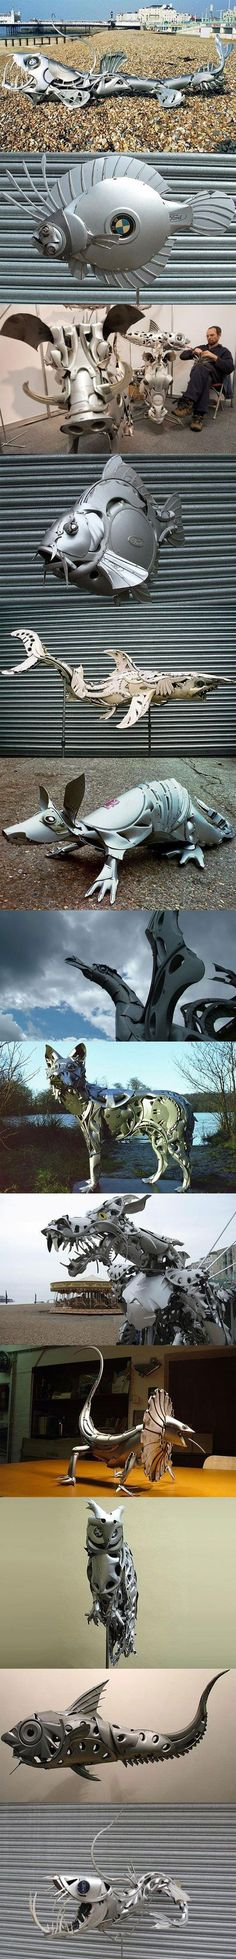 Hubcap sculptures. Sculptures by Ptolemy Elrington totes gonna name drop but I know this dude's family